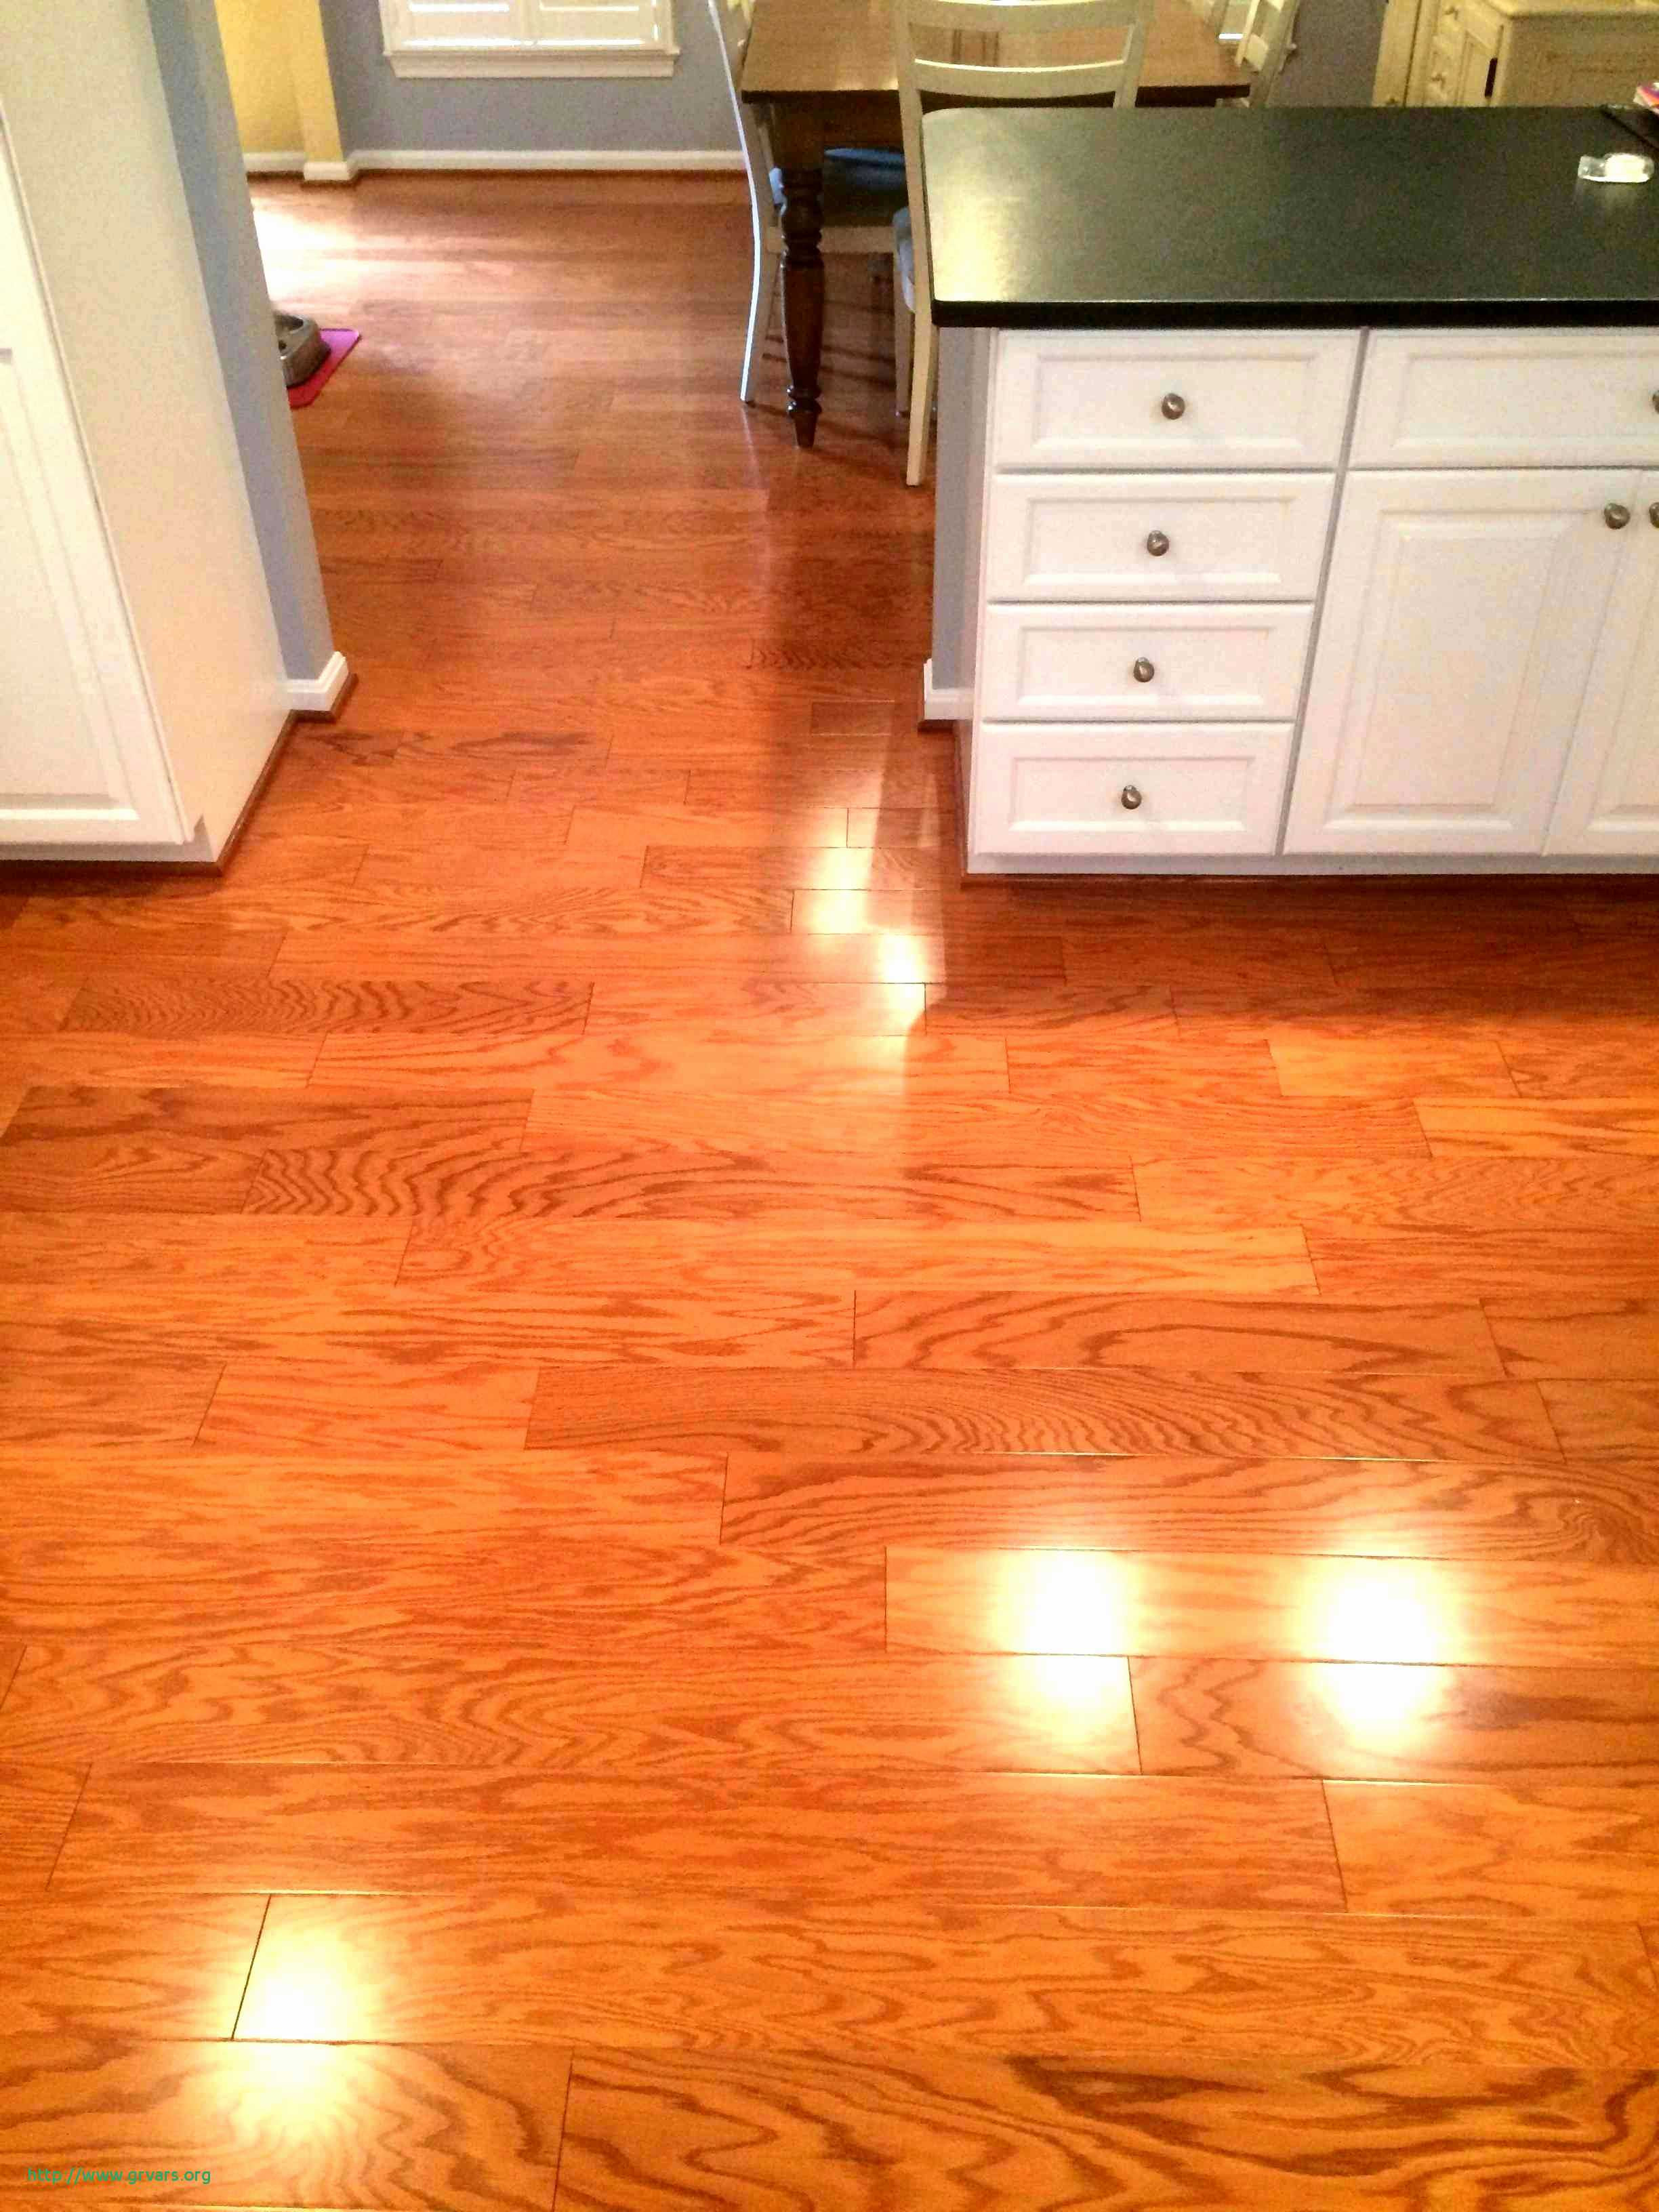 prefinished hardwood flooring charlotte nc of 20 meilleur de how much to charge to install hardwood floor ideas blog for hardwood floor installation how much would it cost to install wood floors